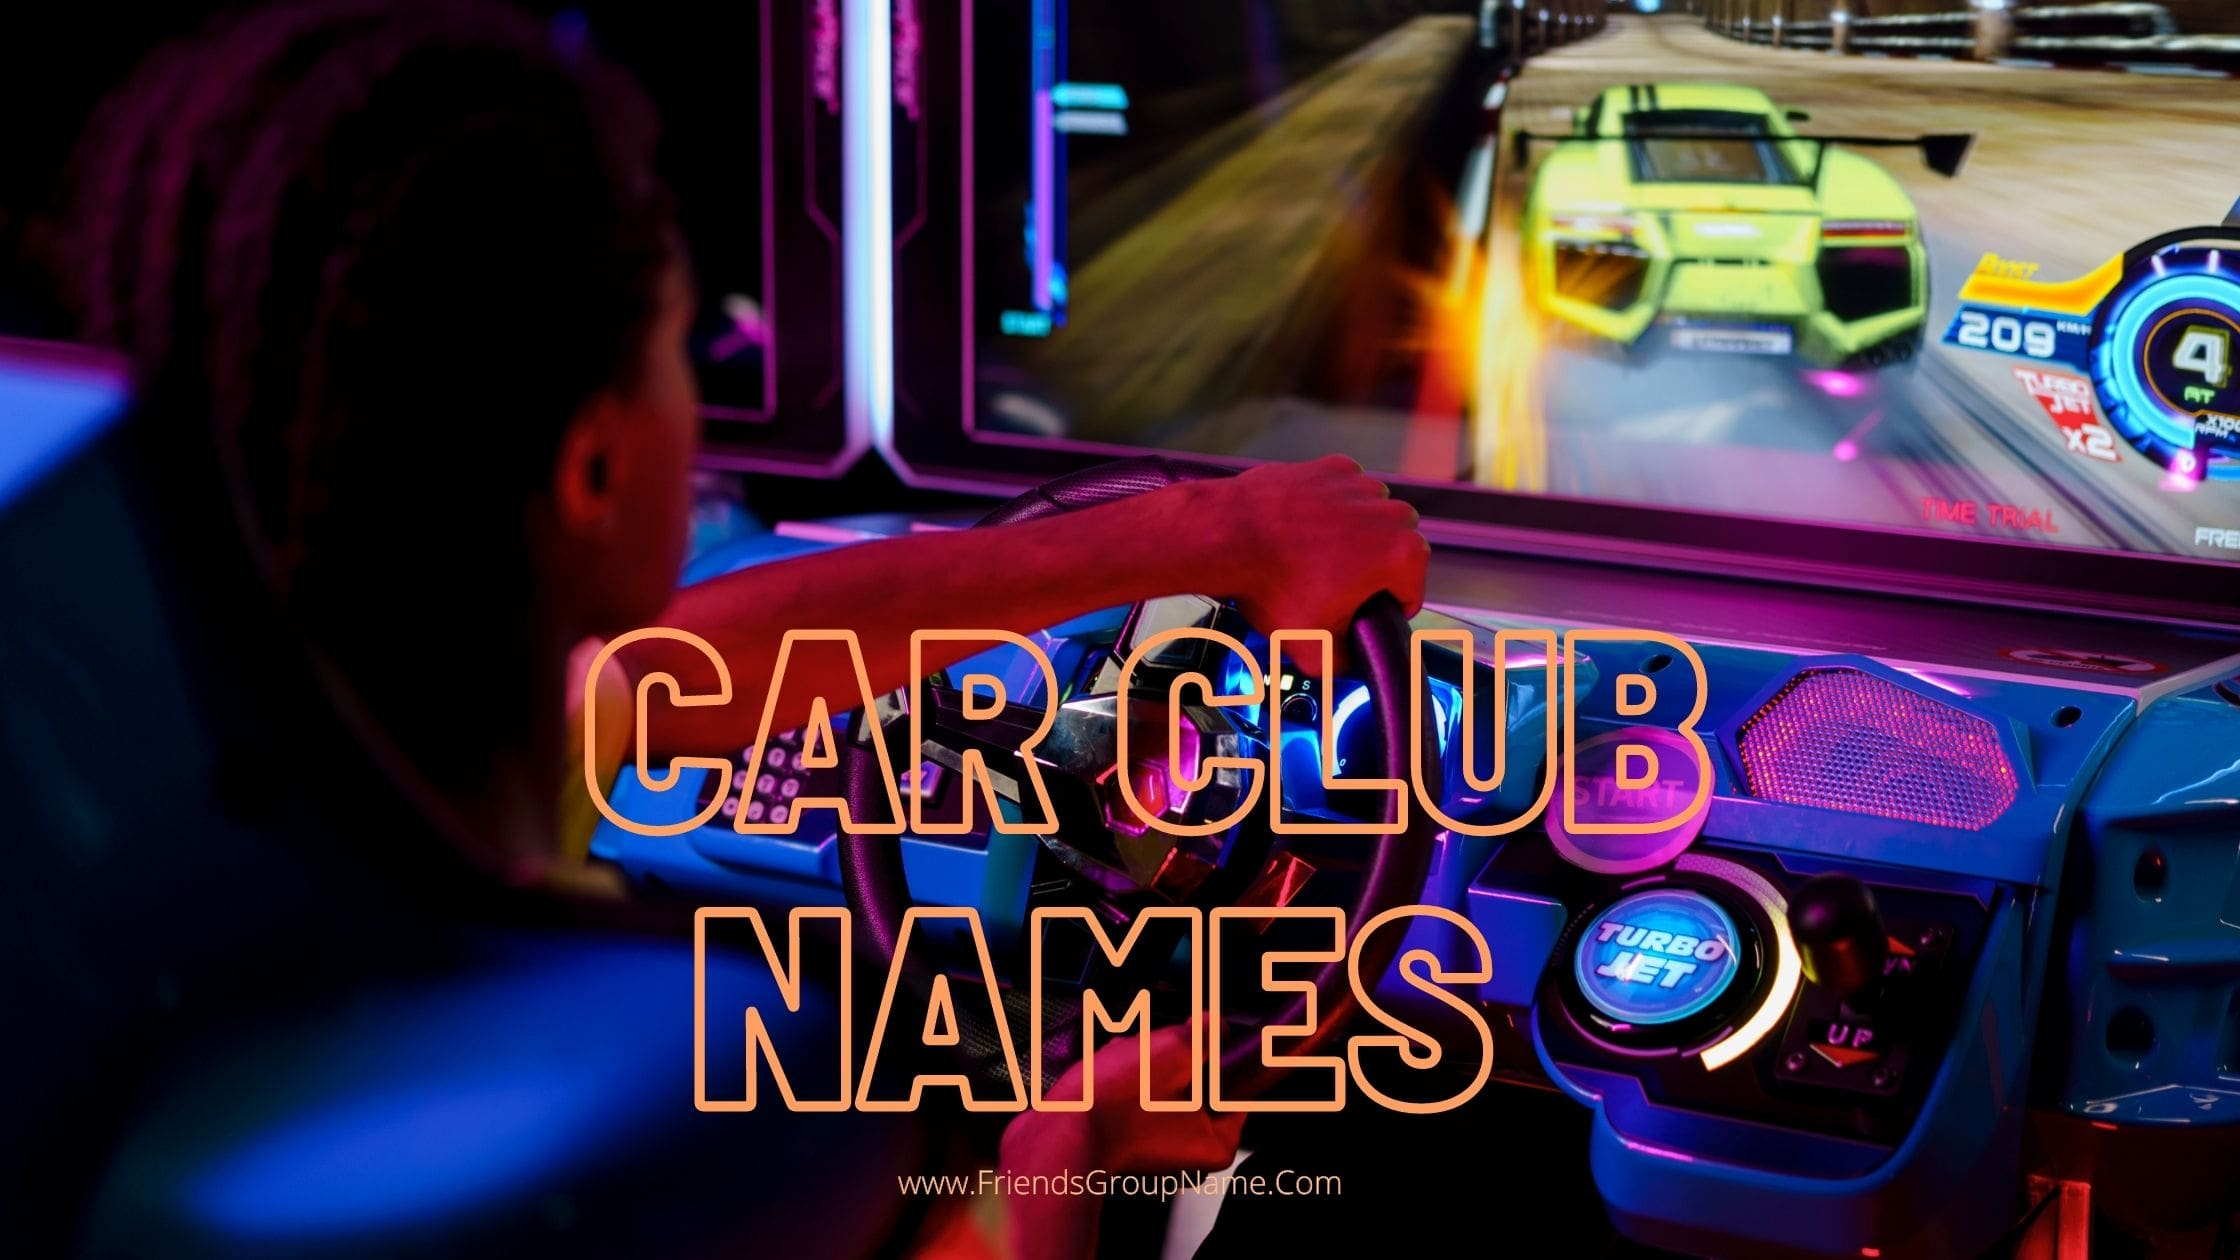 Cool Car Club Names